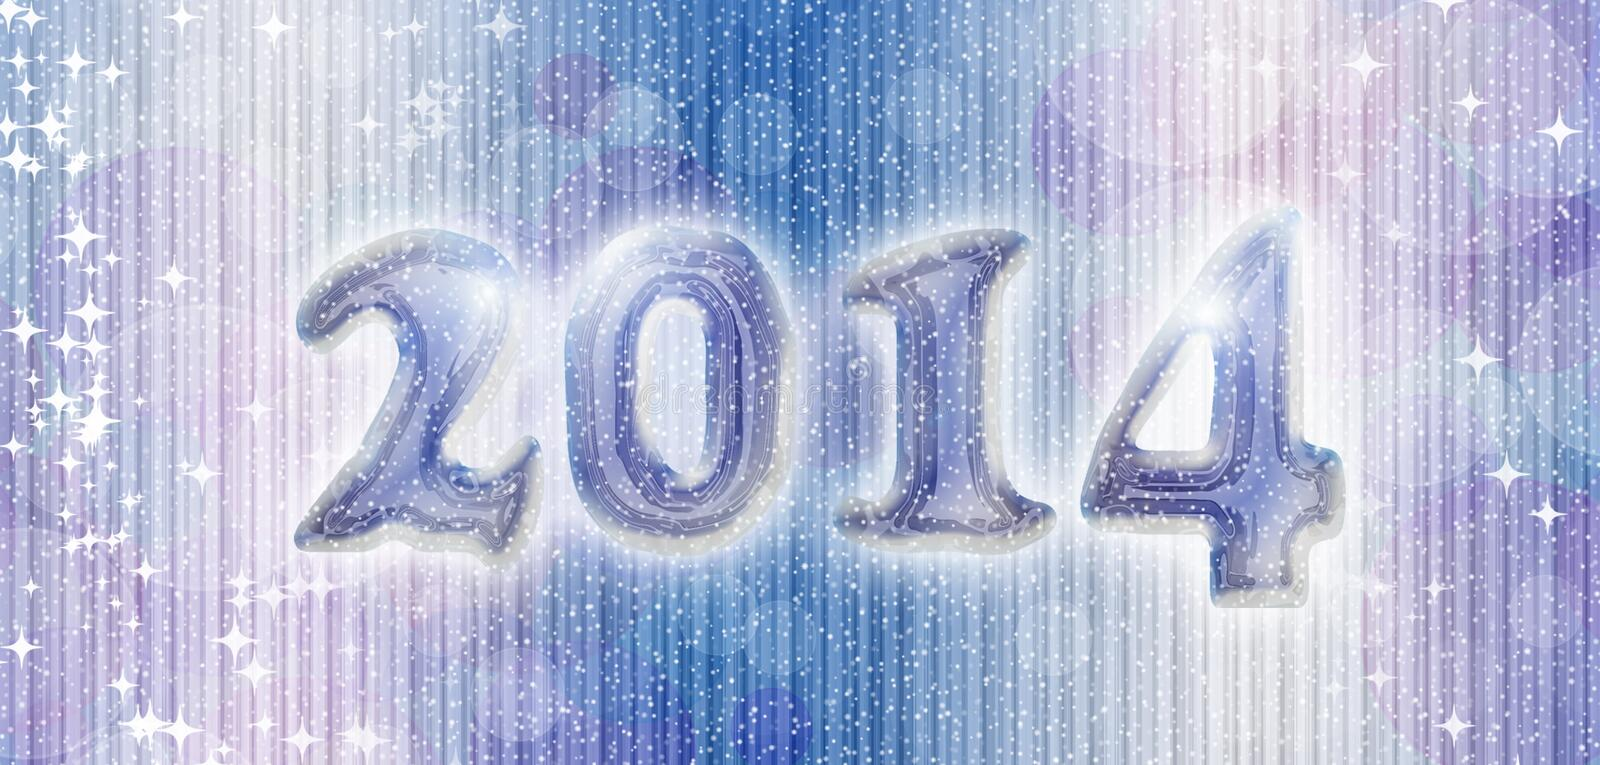 Snowing banner 2014 stock photography